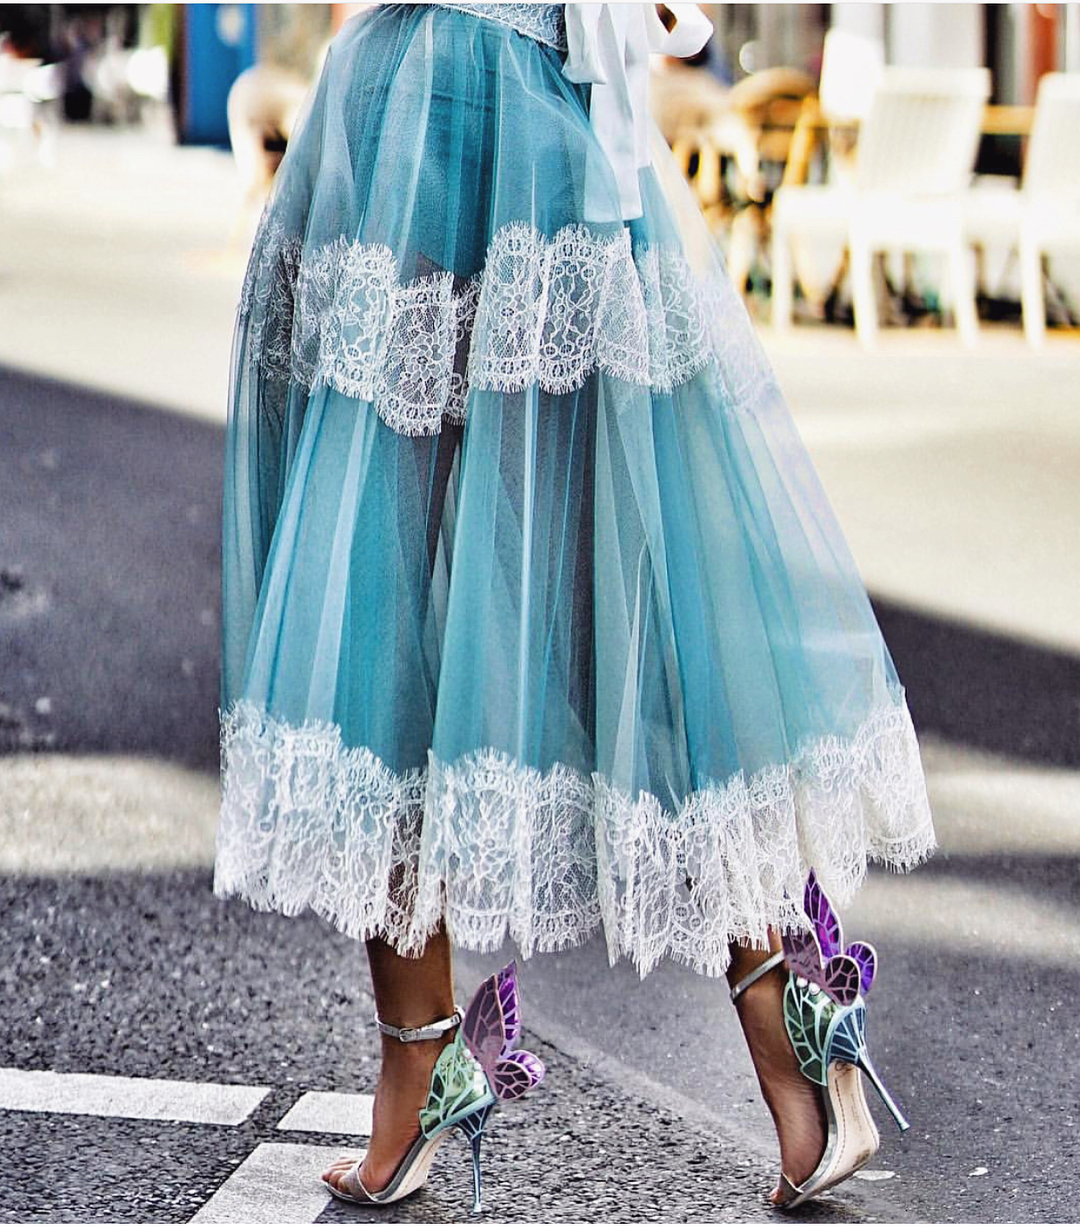 Pastel Blue Tulle Midi Skirt With White Lace Details For Summer Street Walks 2020